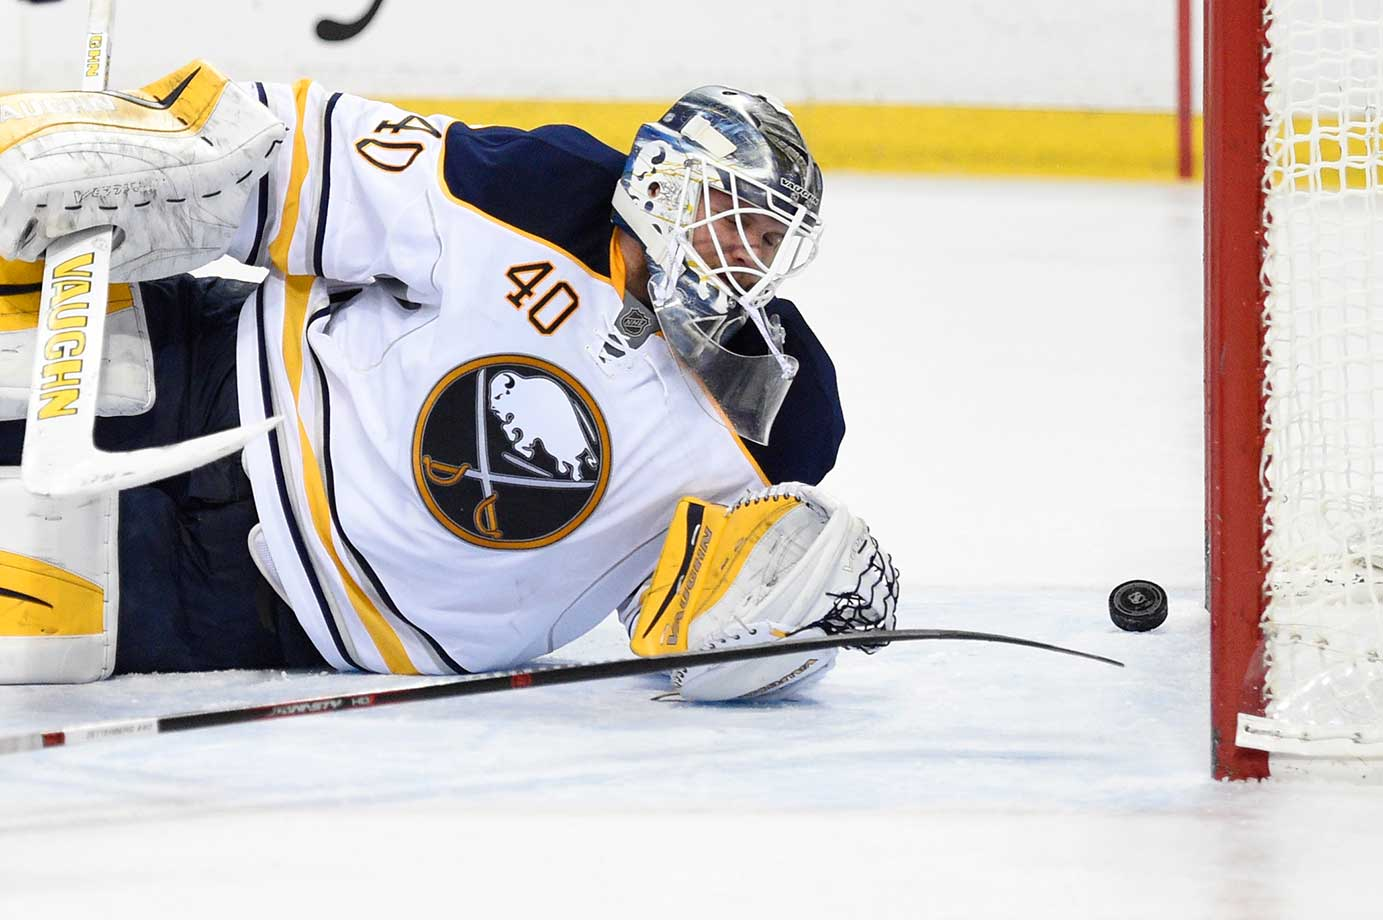 Robin Lehner of the Buffalo Sabres watches the puck go into the goal during the game against the Detroit Red Wings.